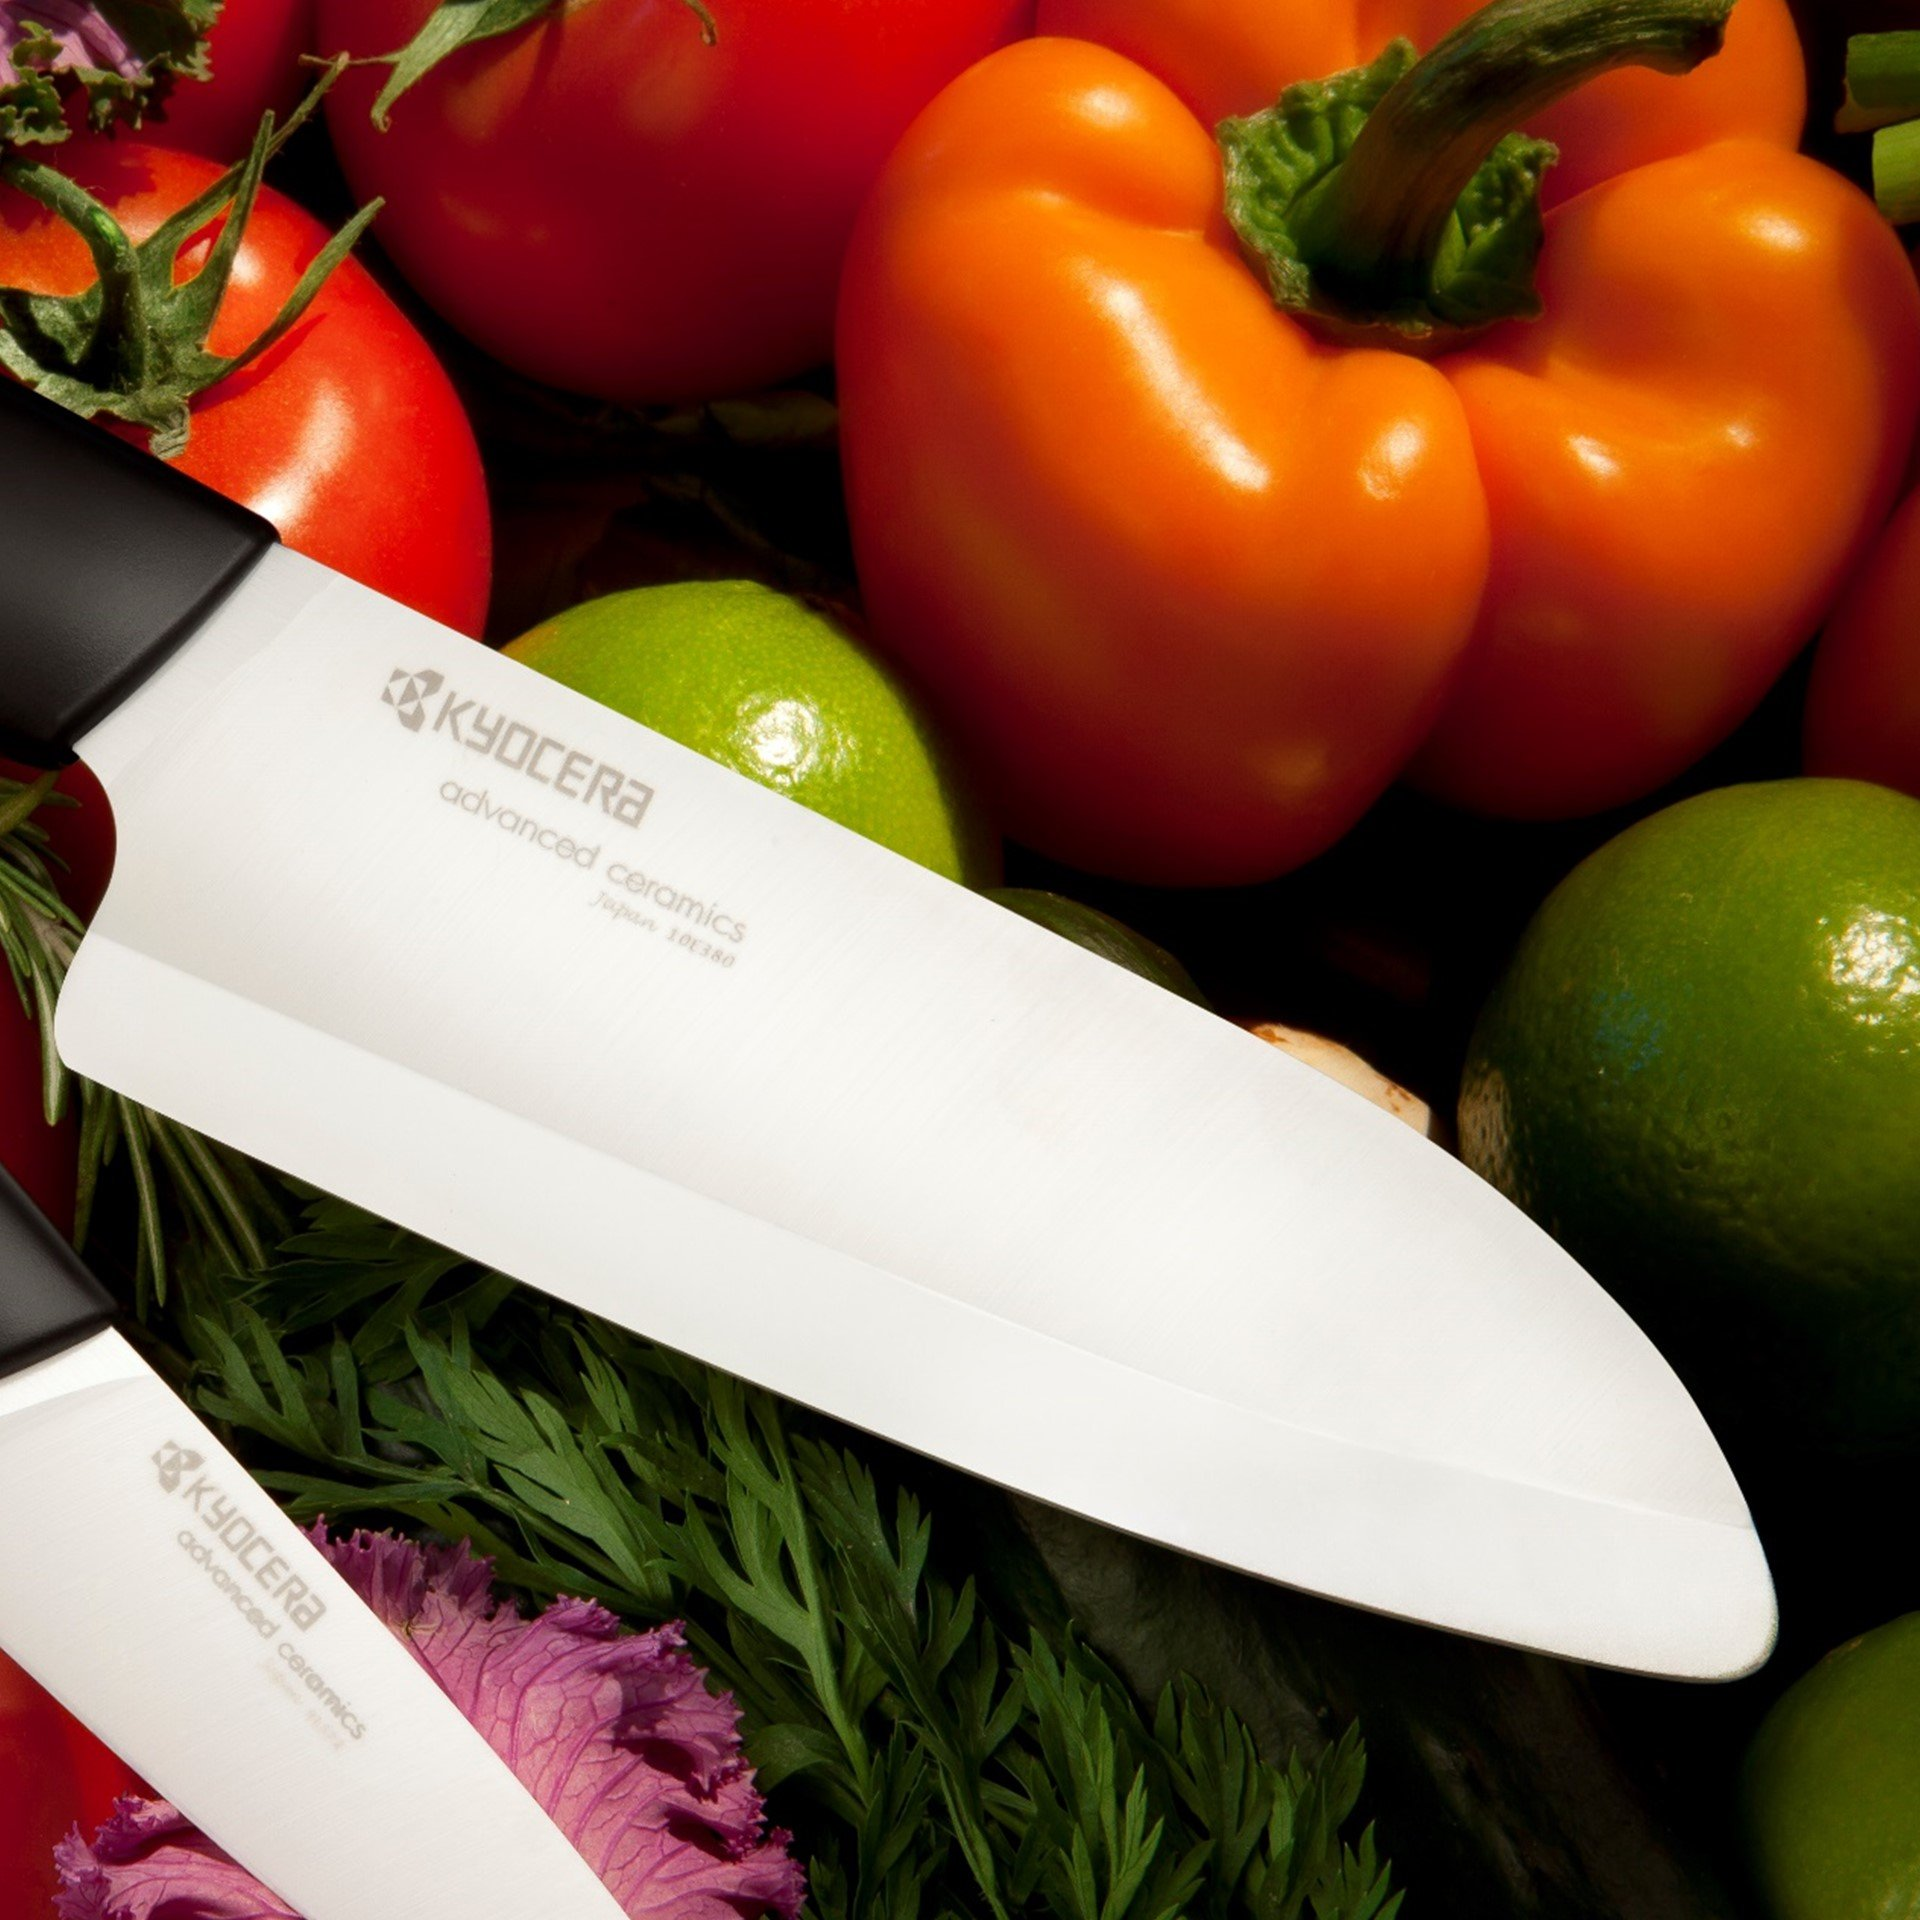 Kyocera Advanced Ceramic Revolution Series 5-1/2-inch Santoku Knife and Y Peeler Set, Black